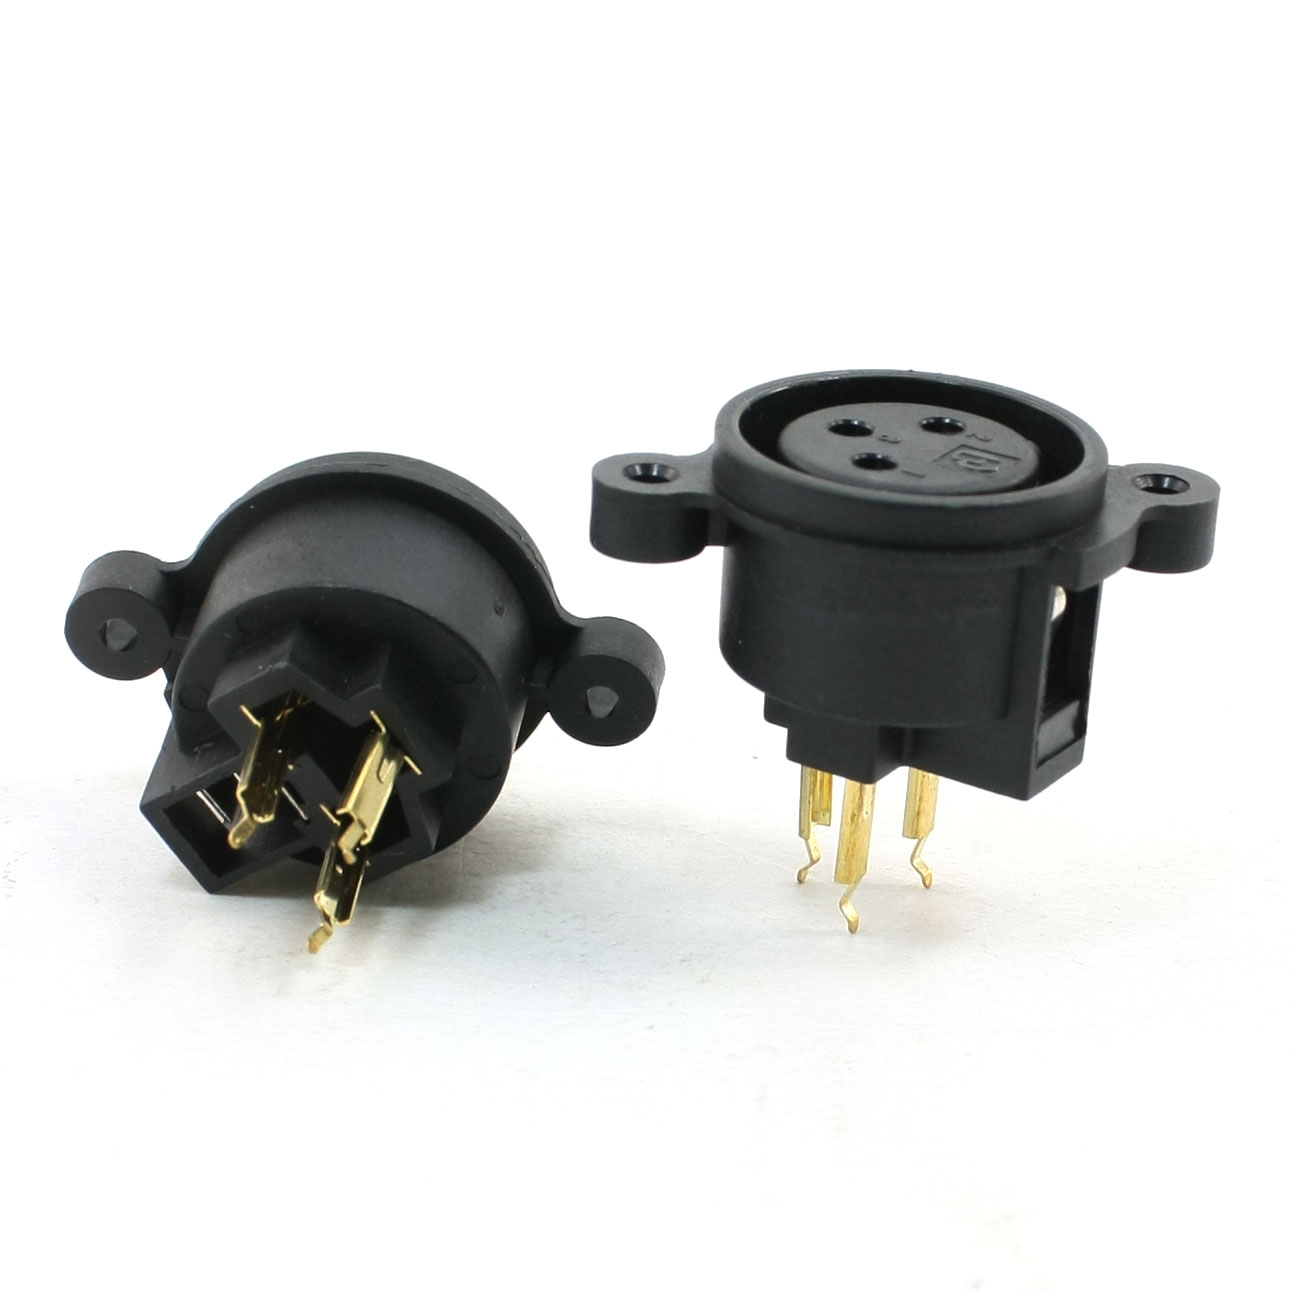 2 Pcs CT3-02HF XLR 3-Pin Female Socket Adapter A/V Equip Connector